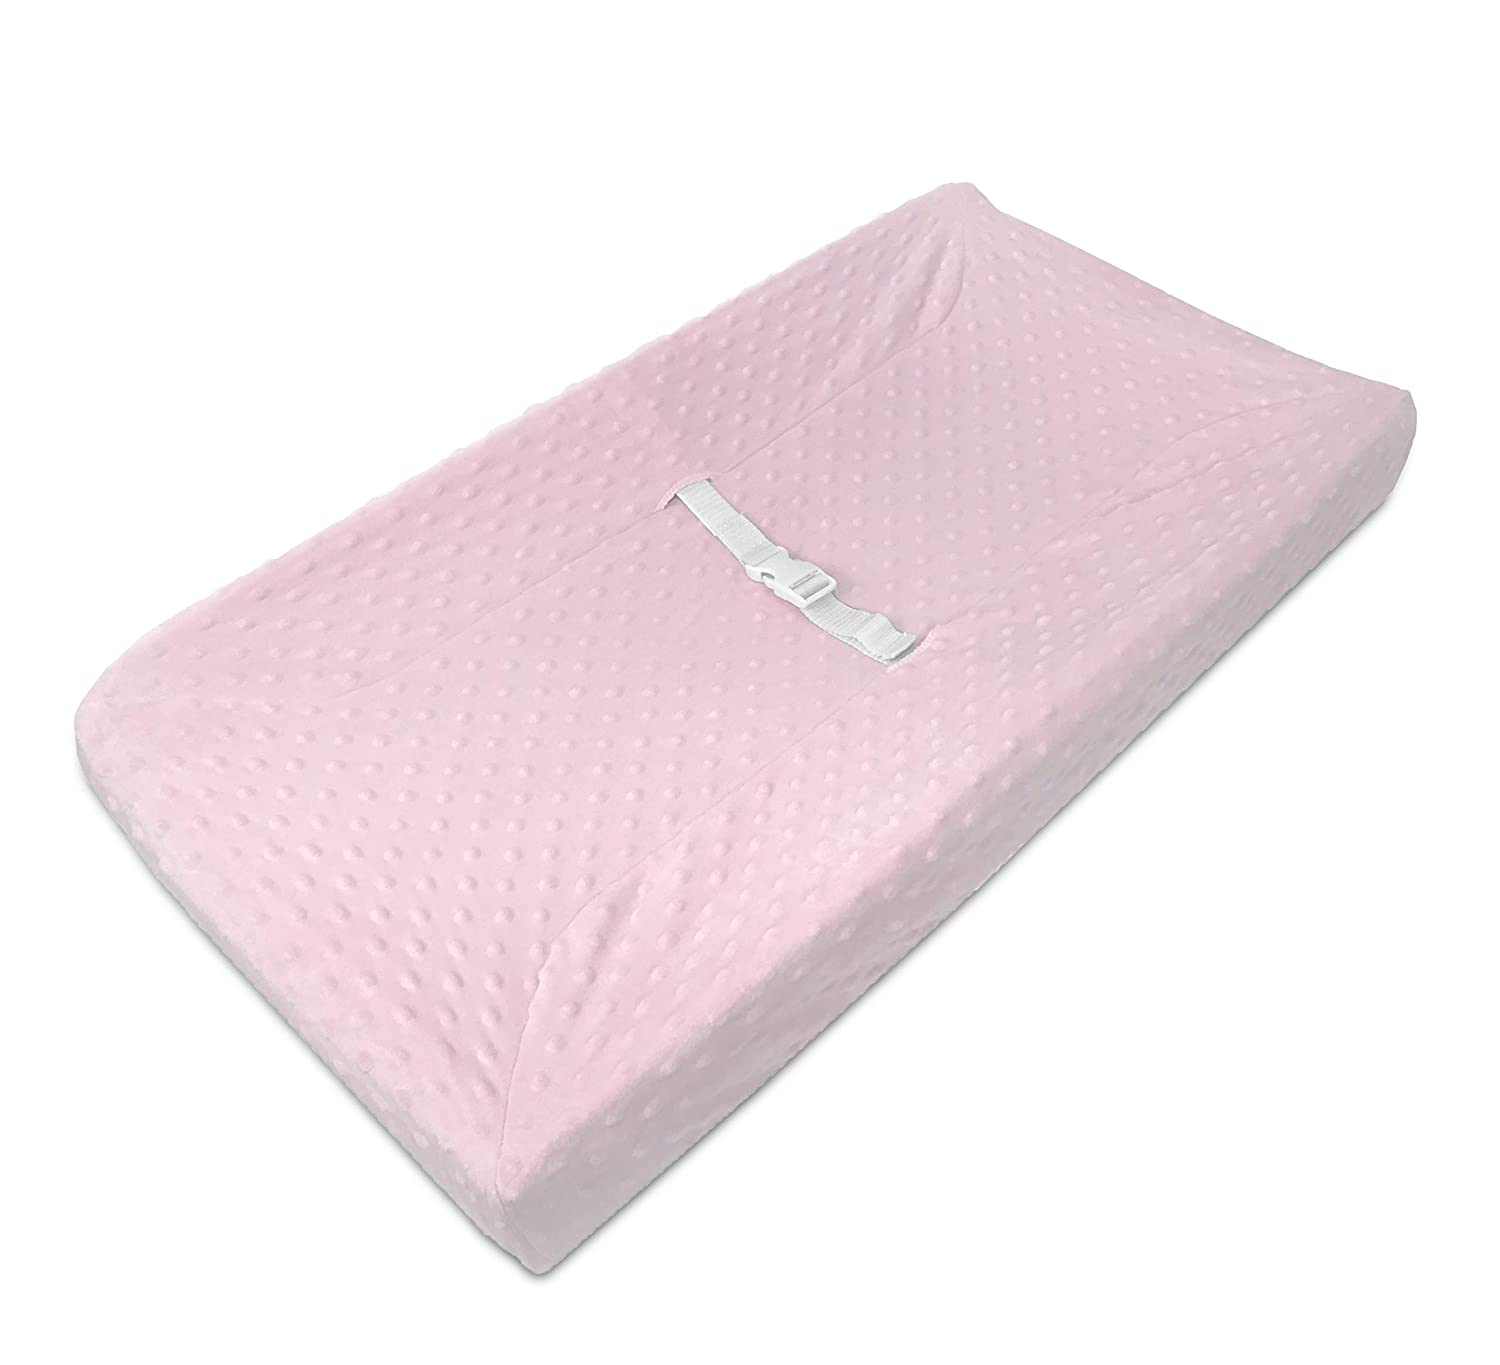 for Boys and Girls White Puff American Baby Company Heavenly Soft Minky Dot Fitted Contoured Changing Pad Cover